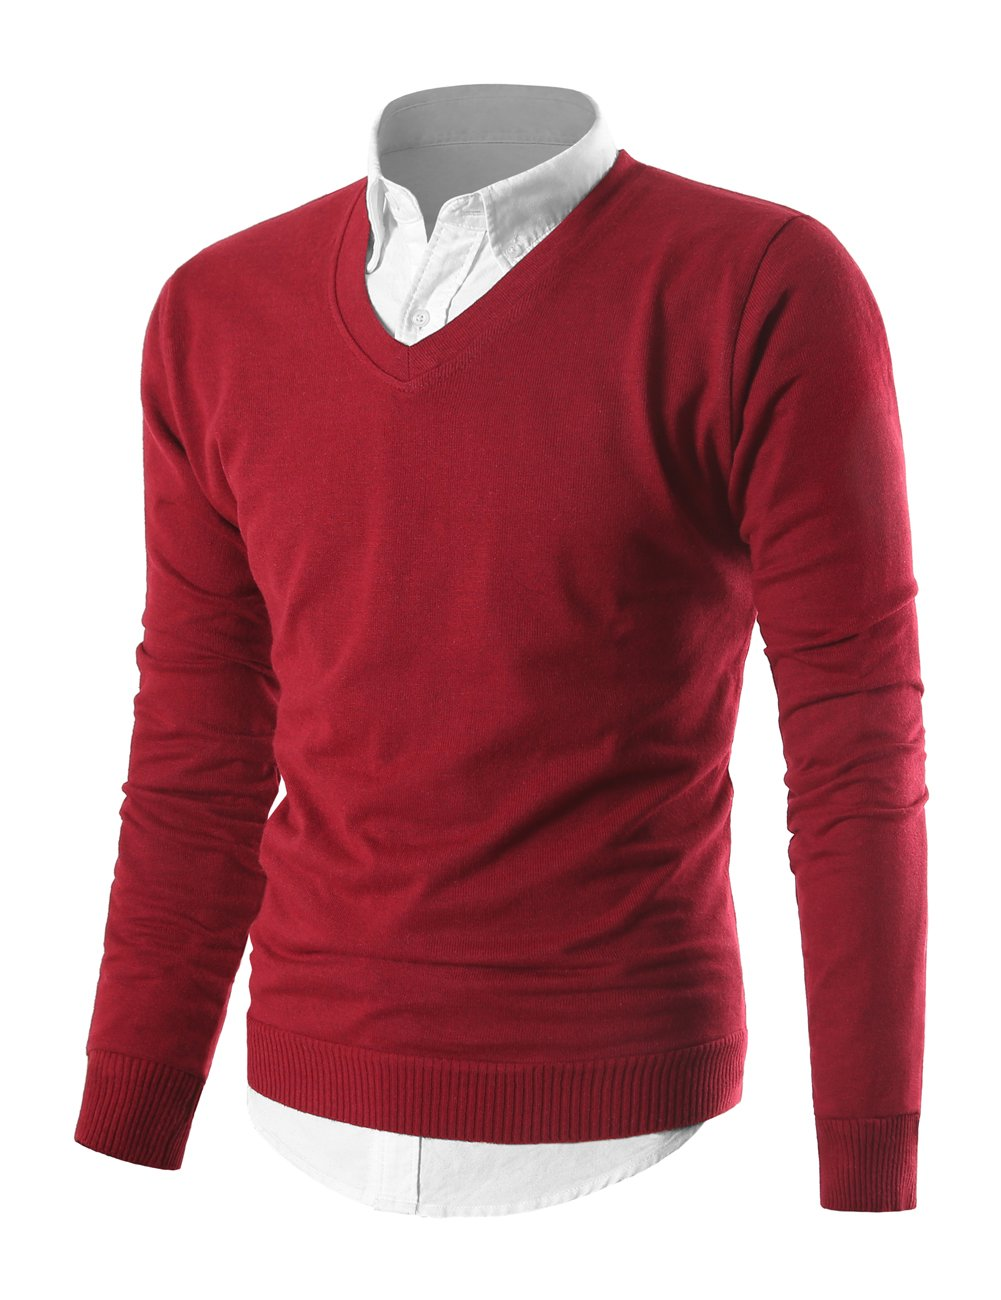 MIEDEON Mens Slim Comfortably Knitted Long Sleeve V-Neck Sweaters (Wine Red, XL)